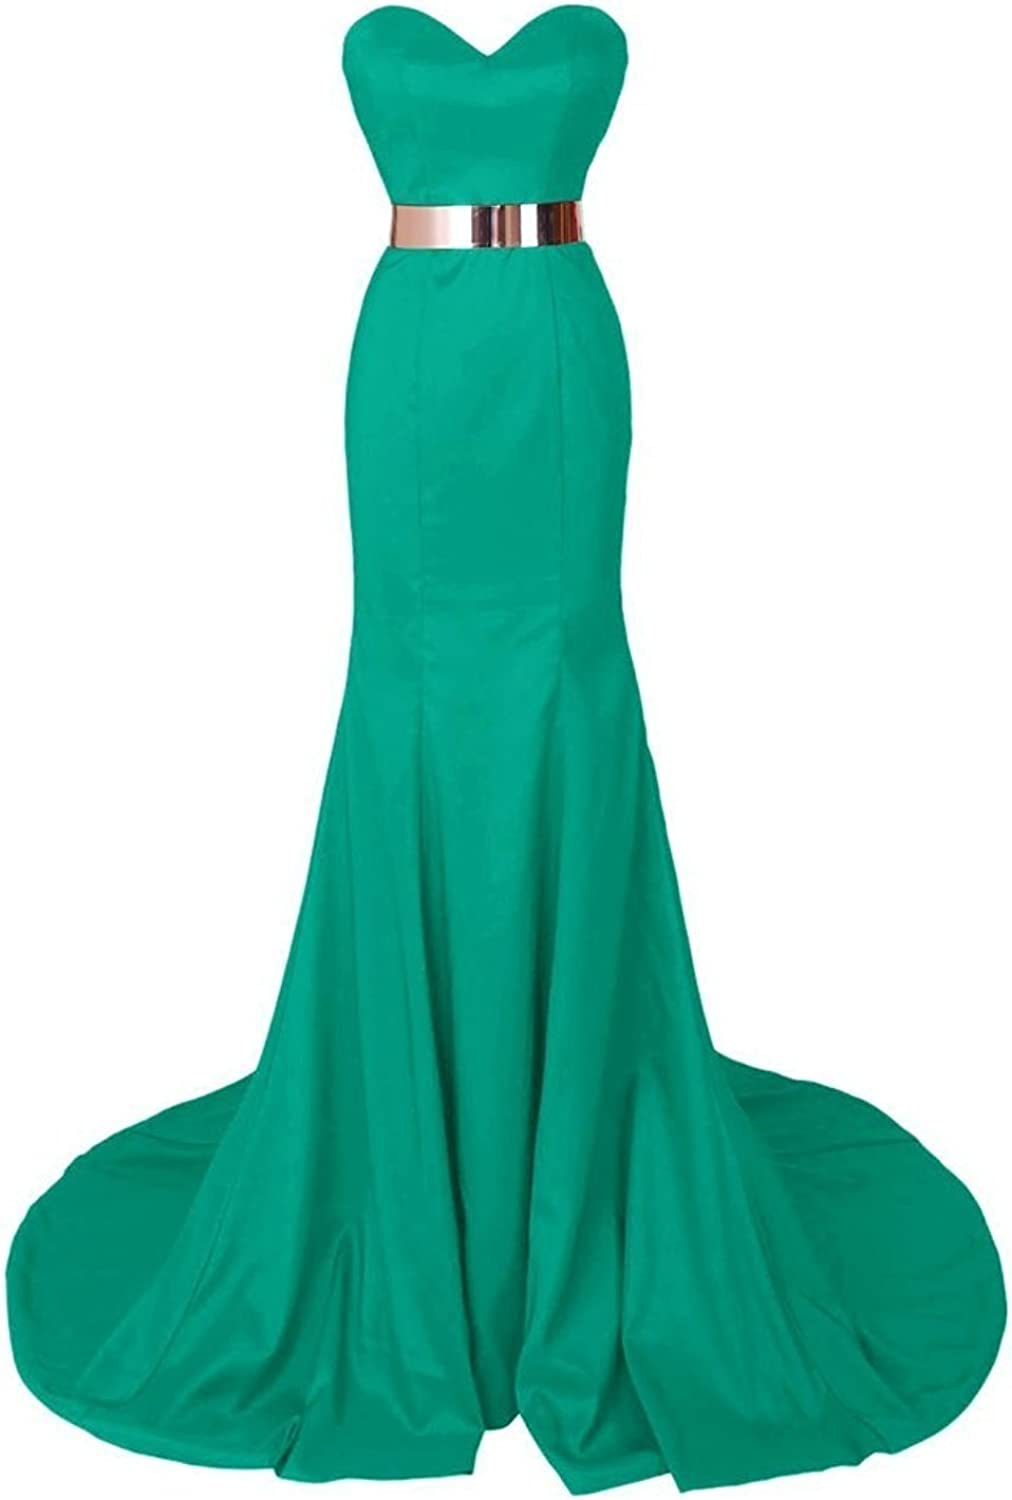 Beilite Sweetheart Mermaid Long Prom Dresses Formal Evening Gowns